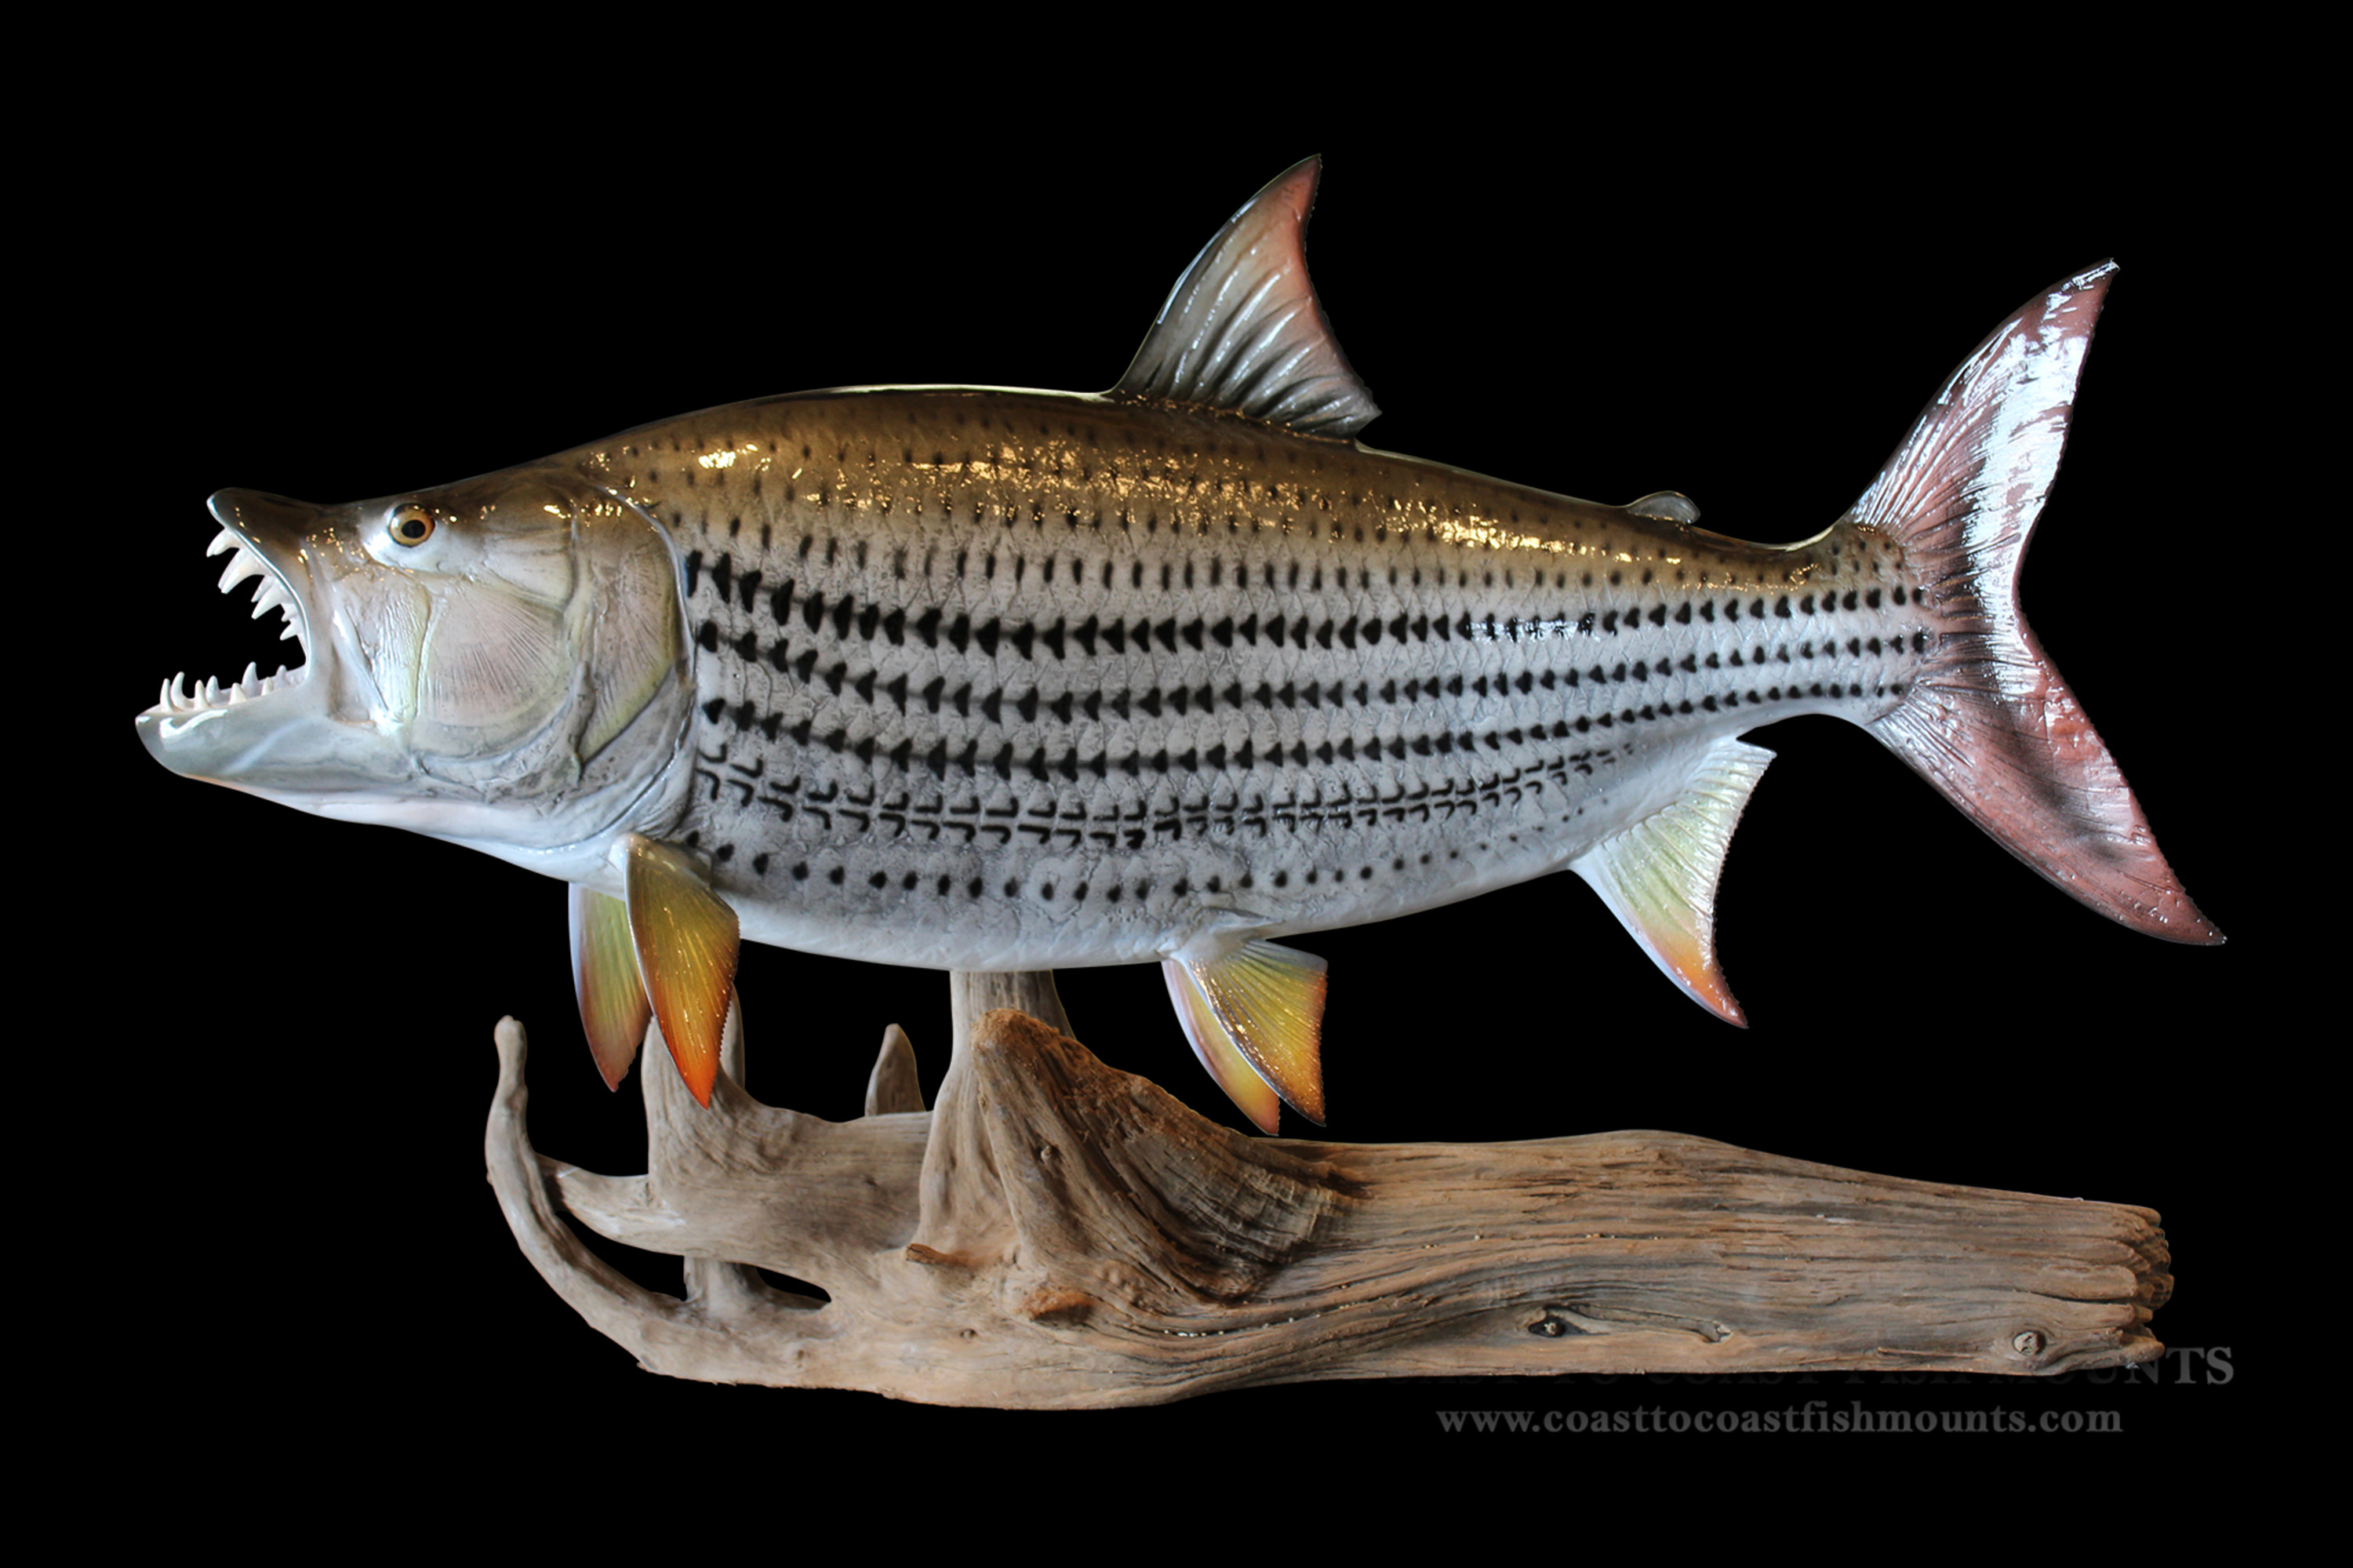 Tigerfish fish mount and fish replicas coast to coast for Replica fish mounts